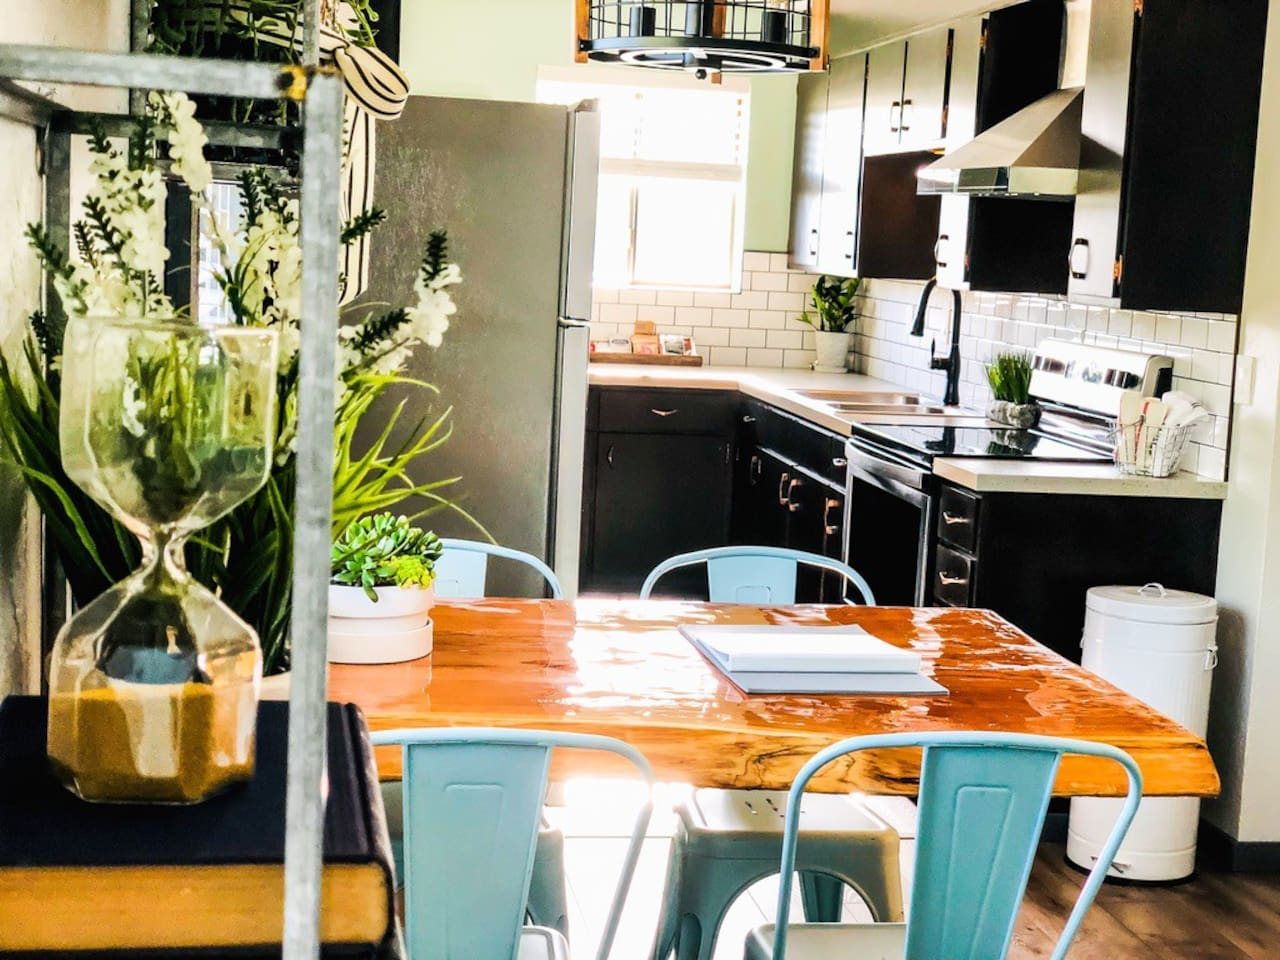 Lofts on Pacific - Dining Rm Table / Kitchen